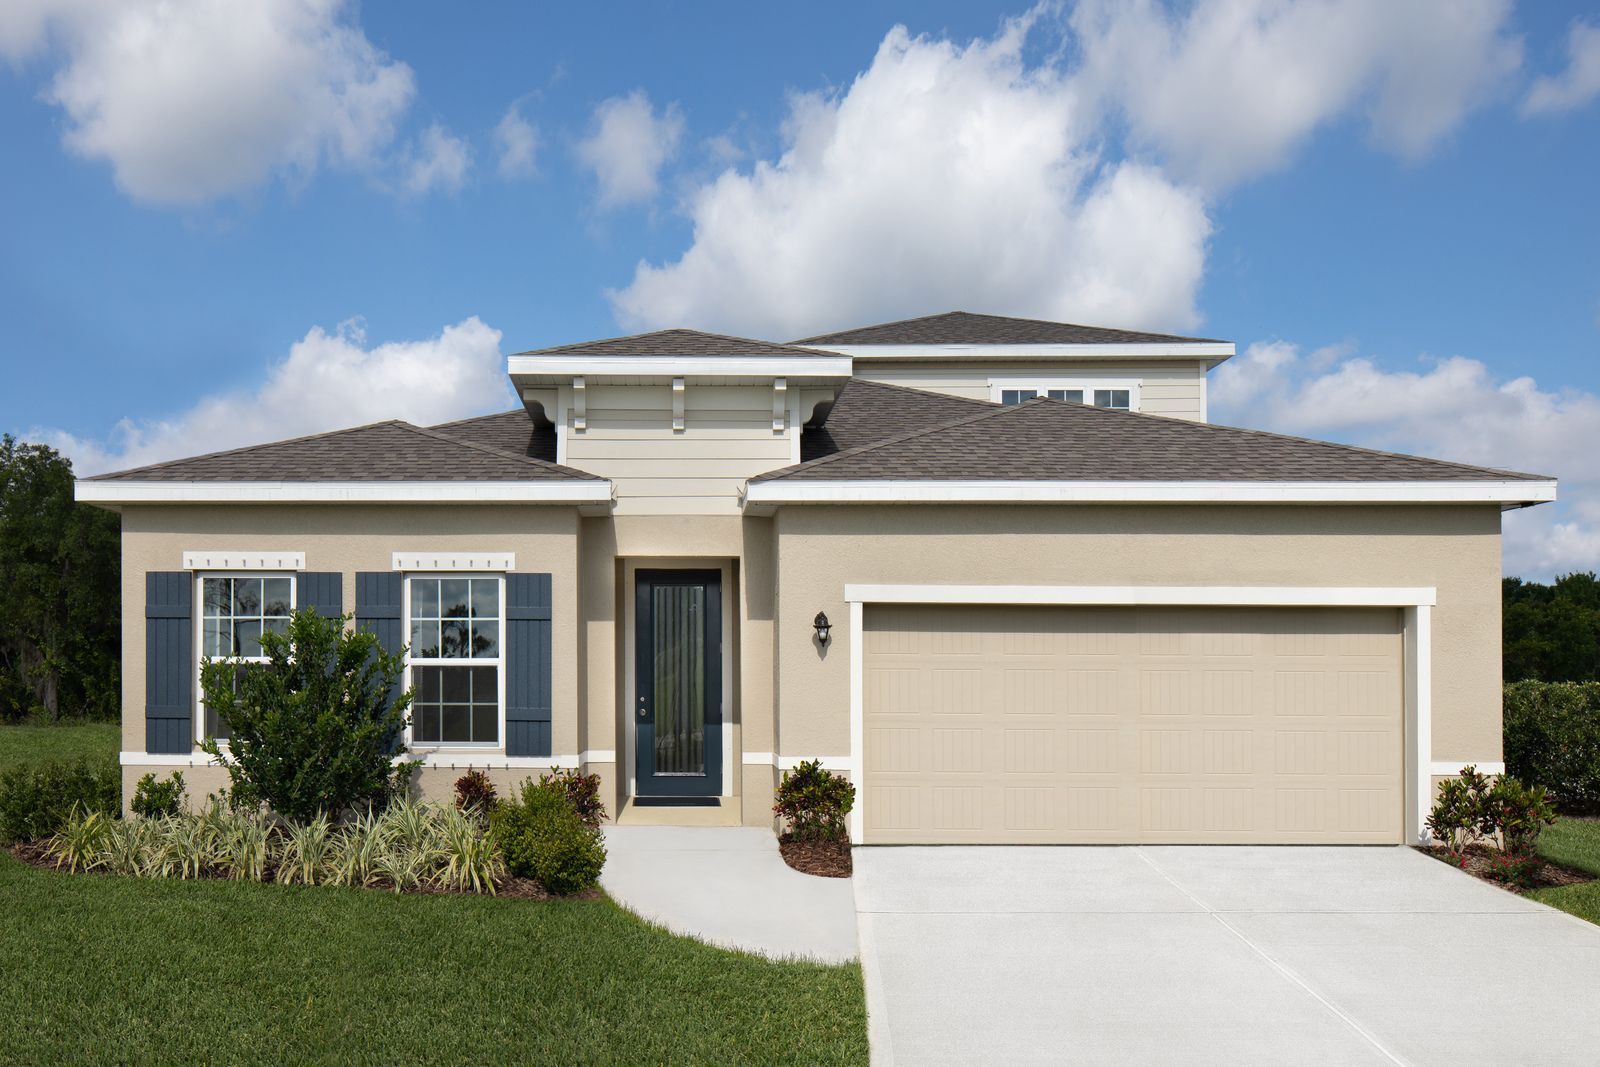 WELCOME TO RIVERSIDE RESERVE!:Own a brand new single-family home in desirable Seminole County from the upper $200s. Schedule your appointmenttoday! 100% USDA financing.